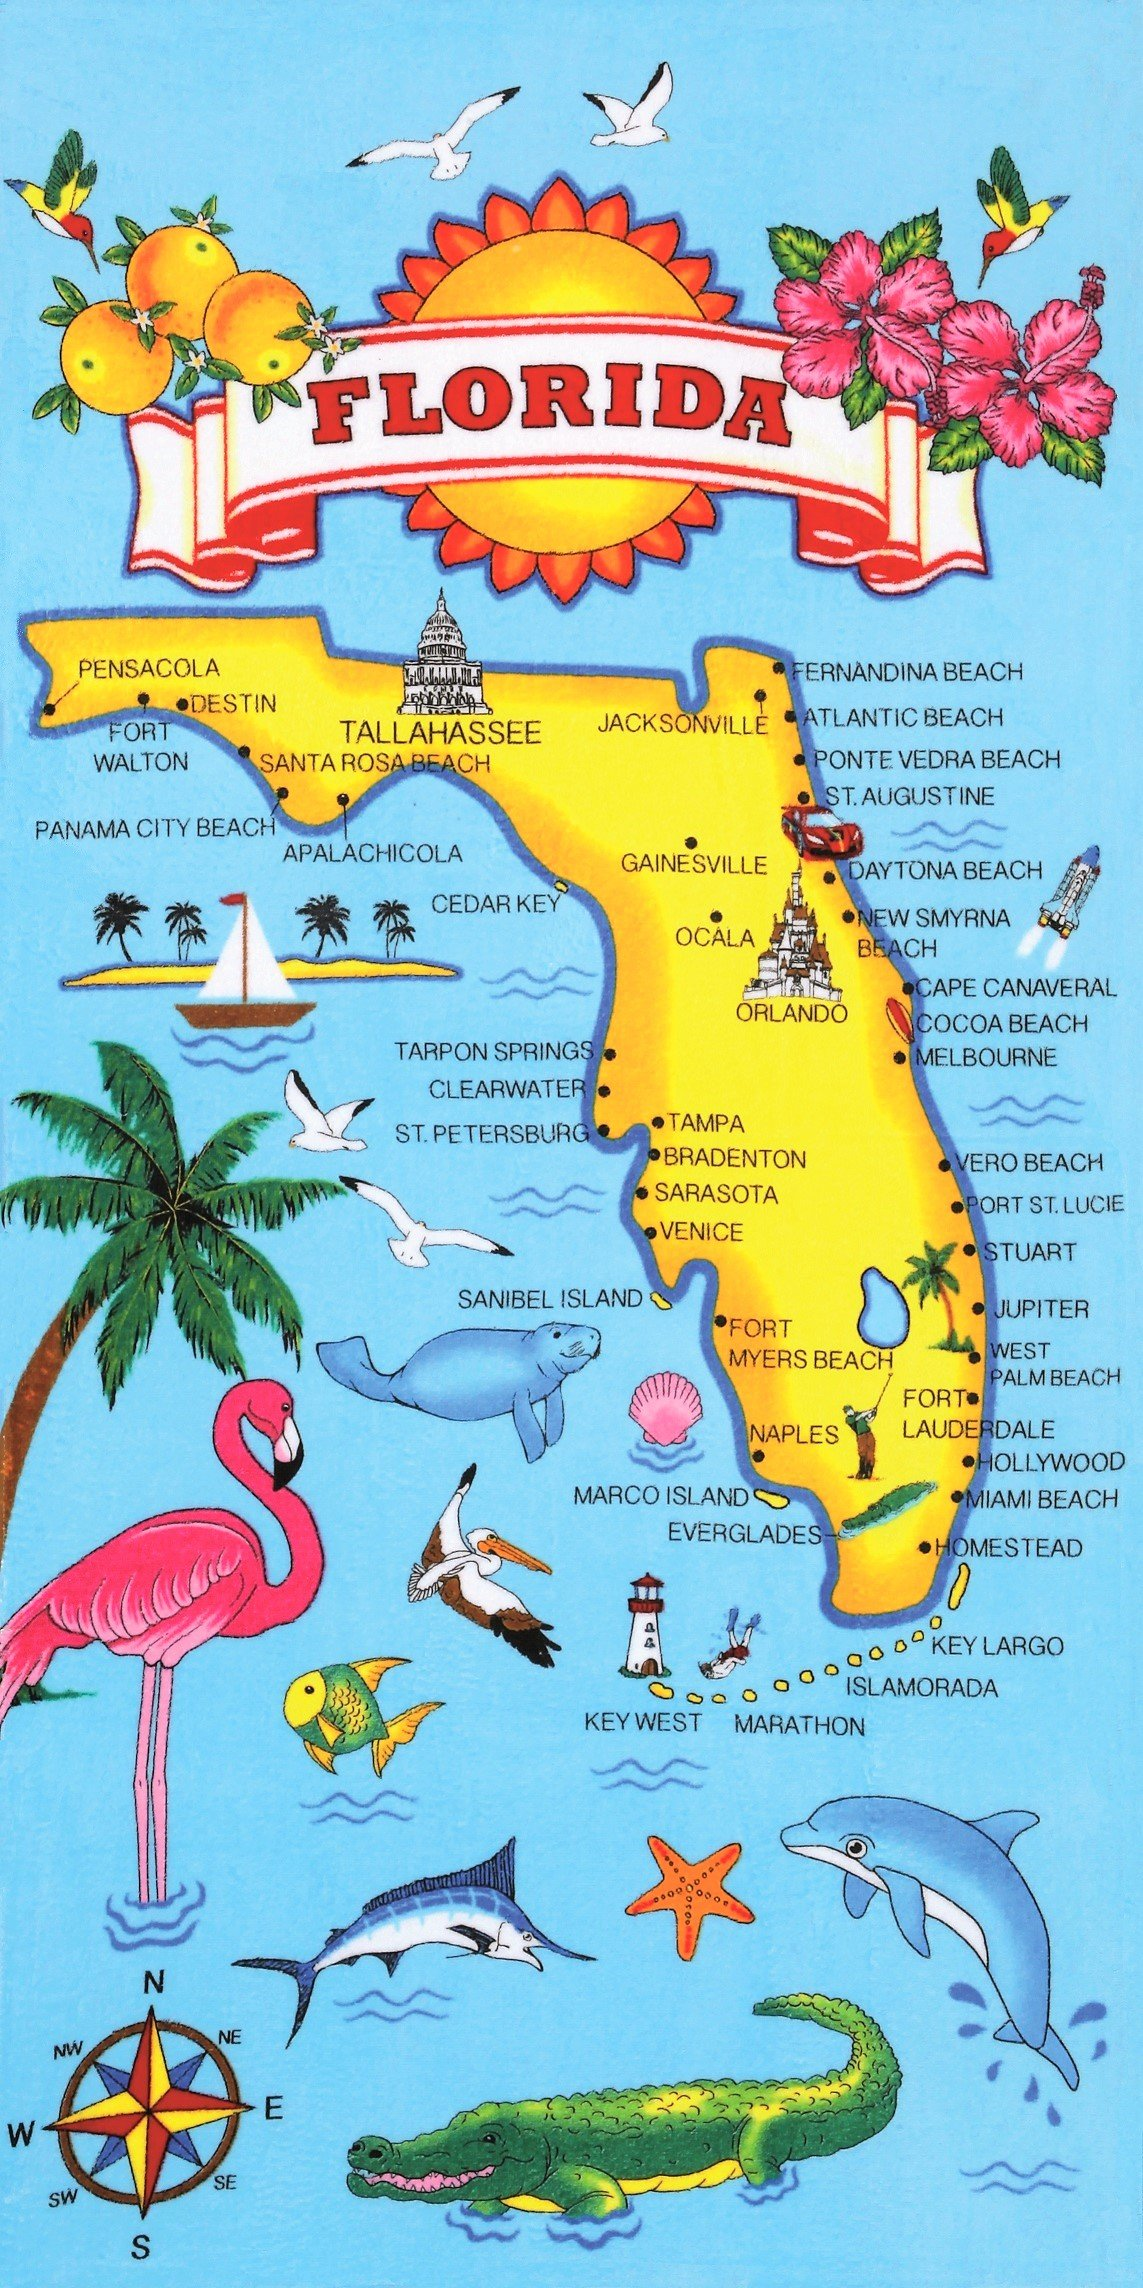 Florida Map Velour Brazilian Beach Towel 30x60 Inches by Bahia Collection by Dohler